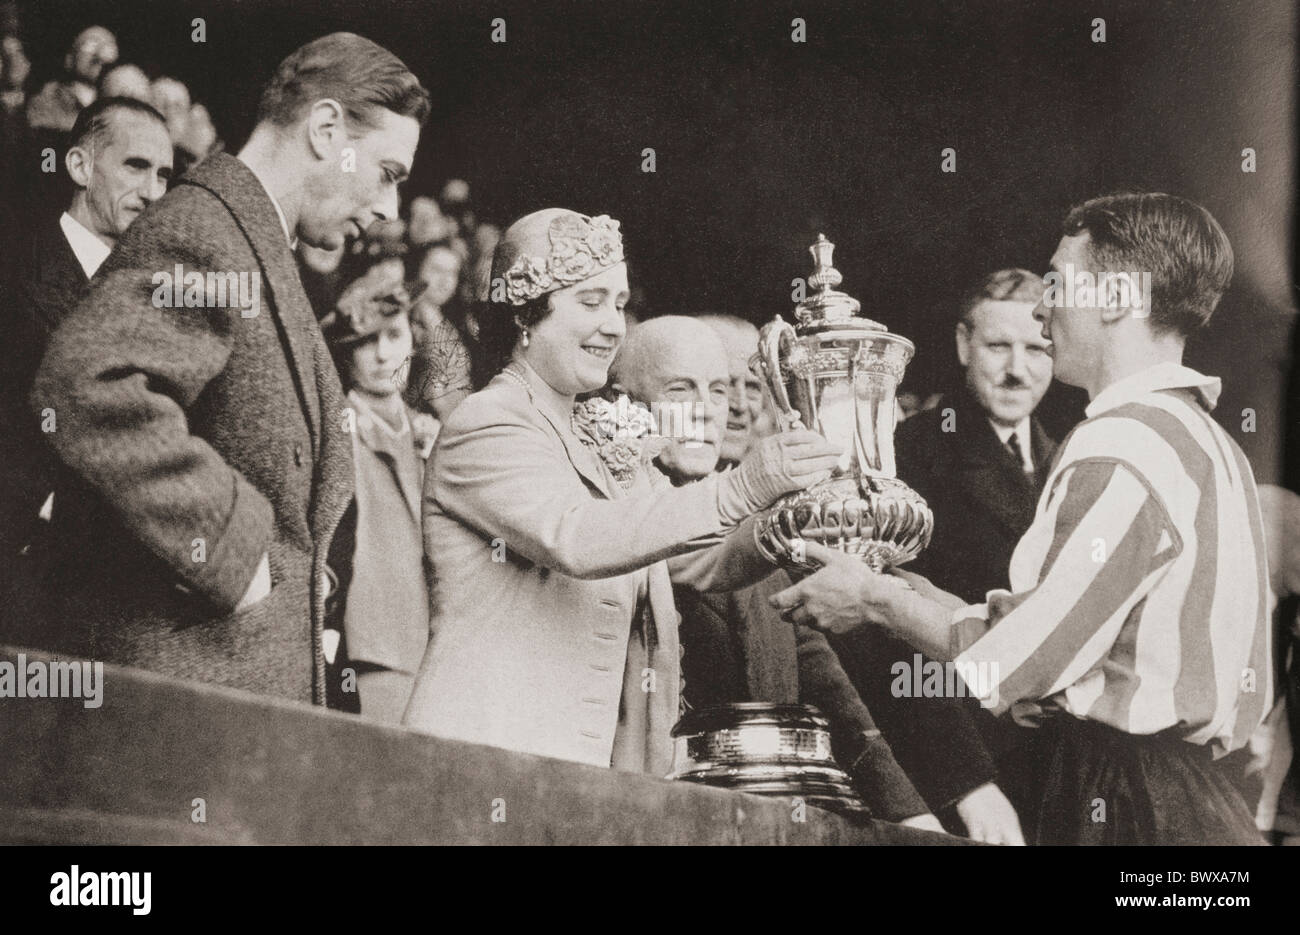 King George VI and Queen Elizabeth presenting the cup to Raich Carter, the Sunderland captain after his teams victory - Stock Image